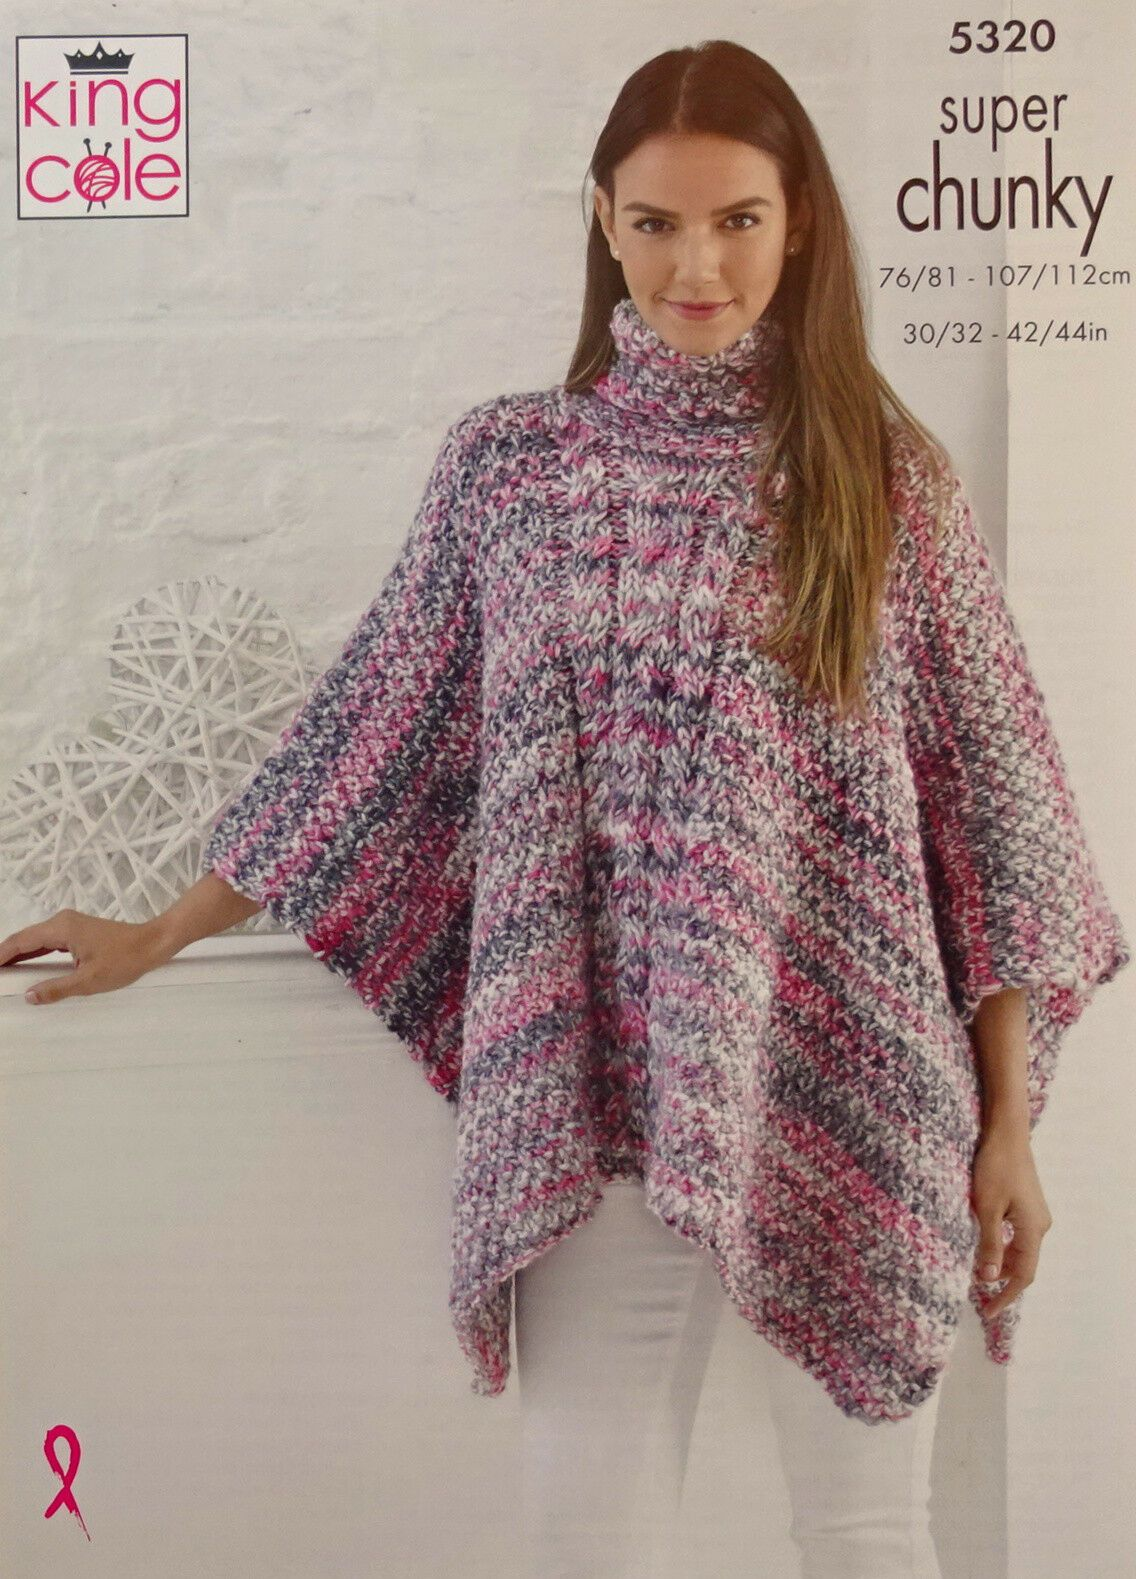 daba0f6da King Cole Womens Poncho Hat Scarf and Cowl Knitting Pattern in Super Chunky  5320